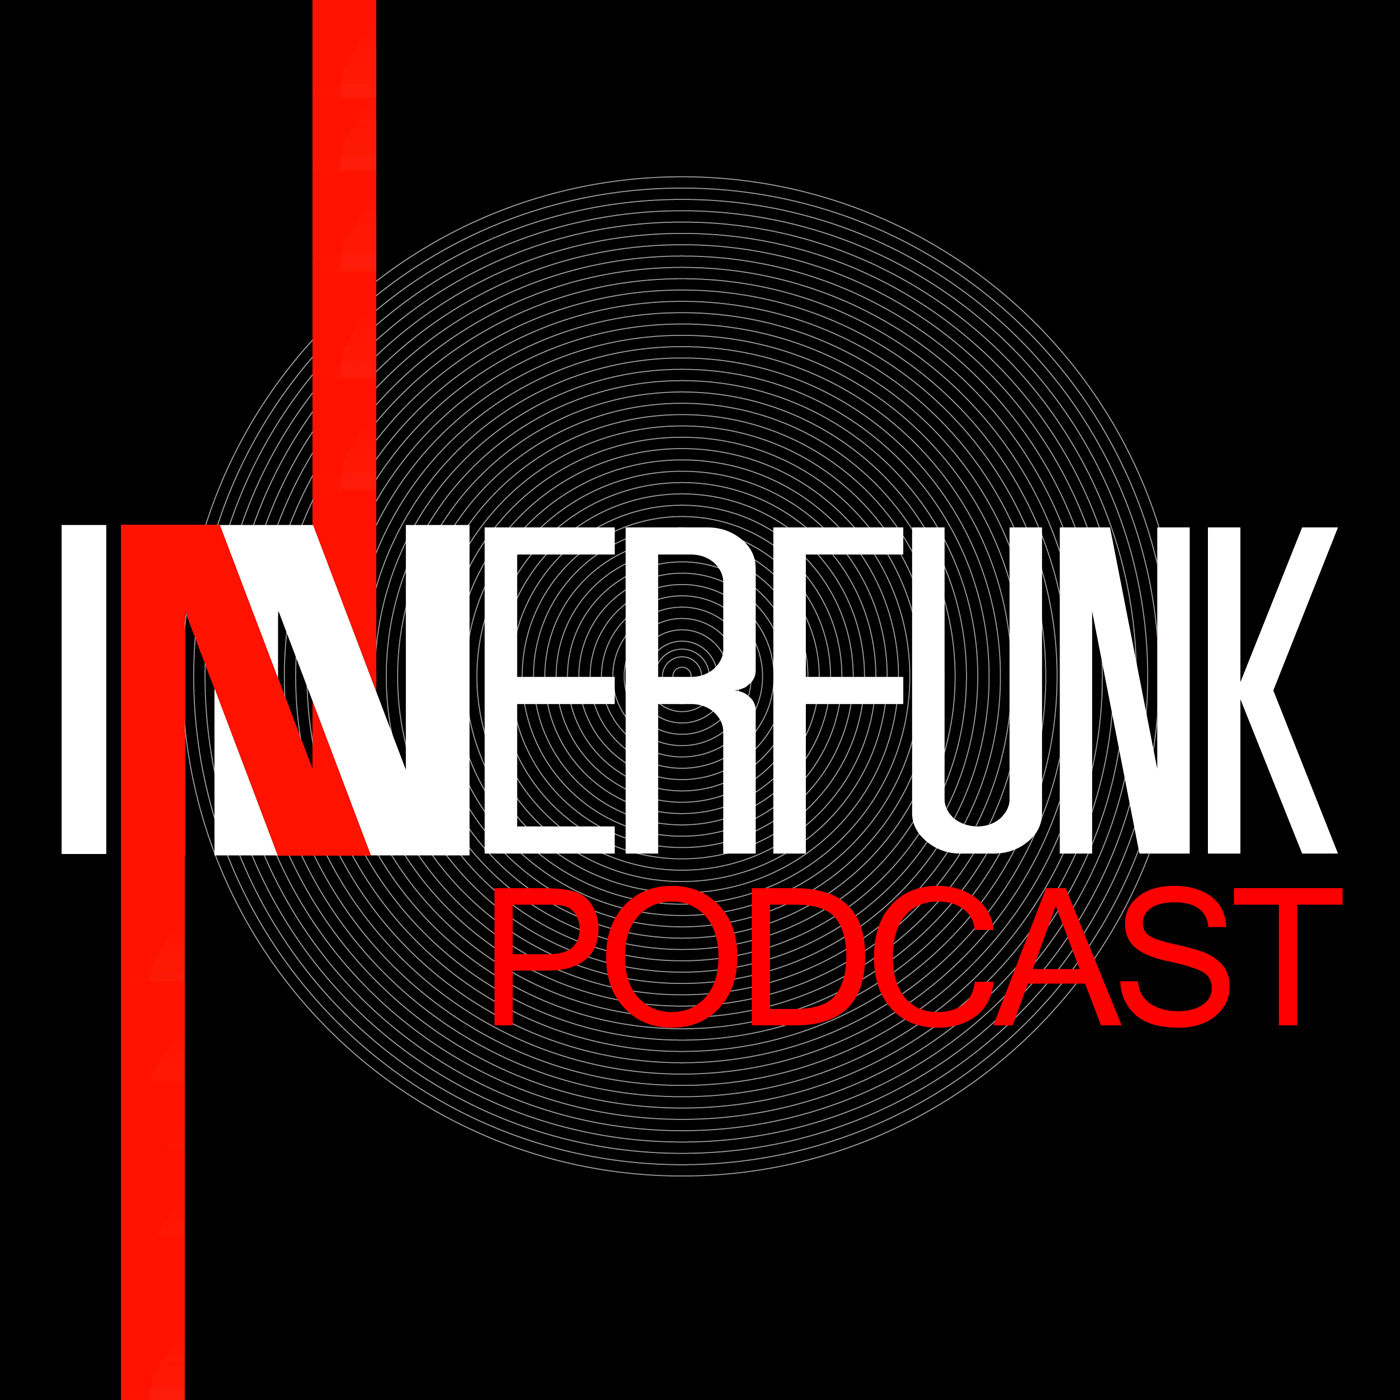 INNERFUNK PODCAST